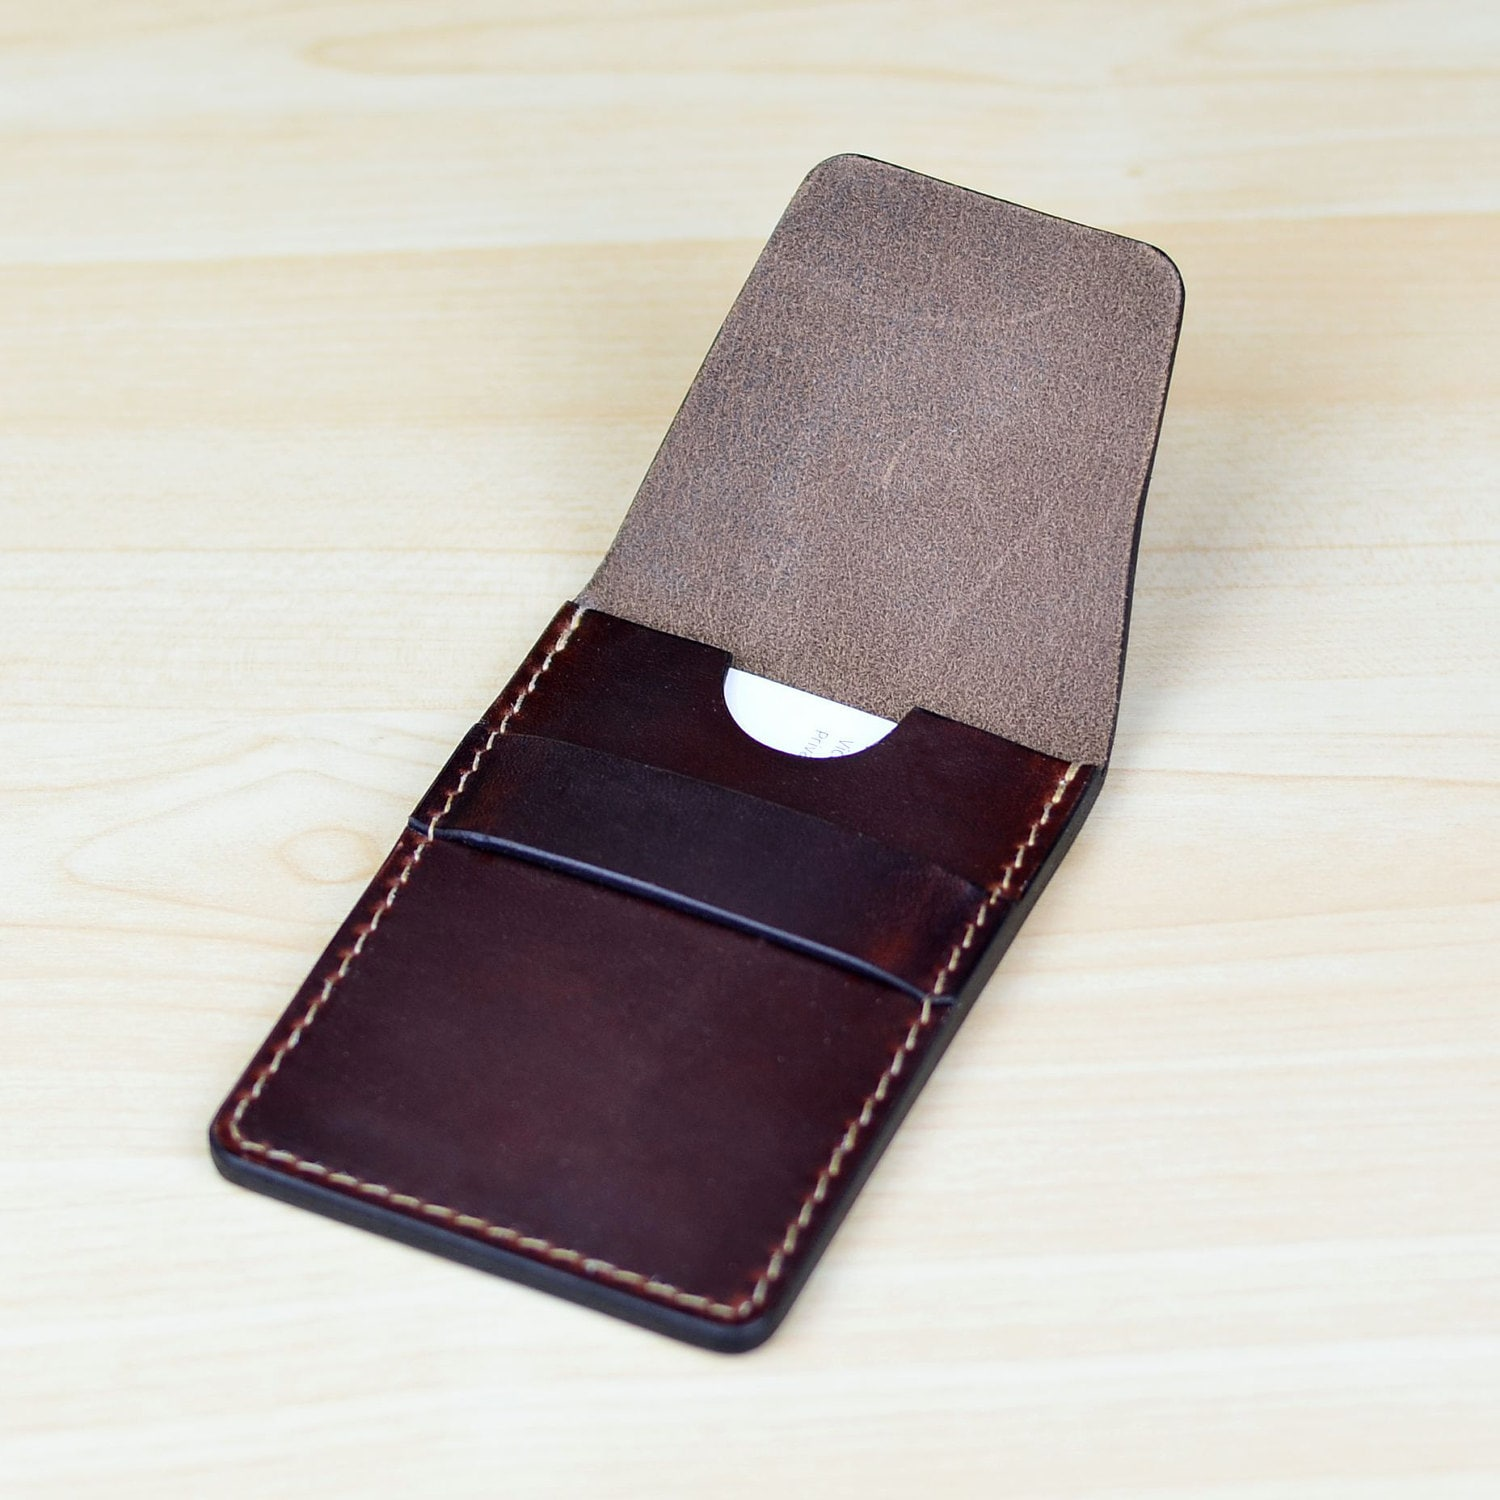 Leather business card holder personalized leather business card leather business card holder personalized leather business card case leather card case leather magicingreecefo Gallery